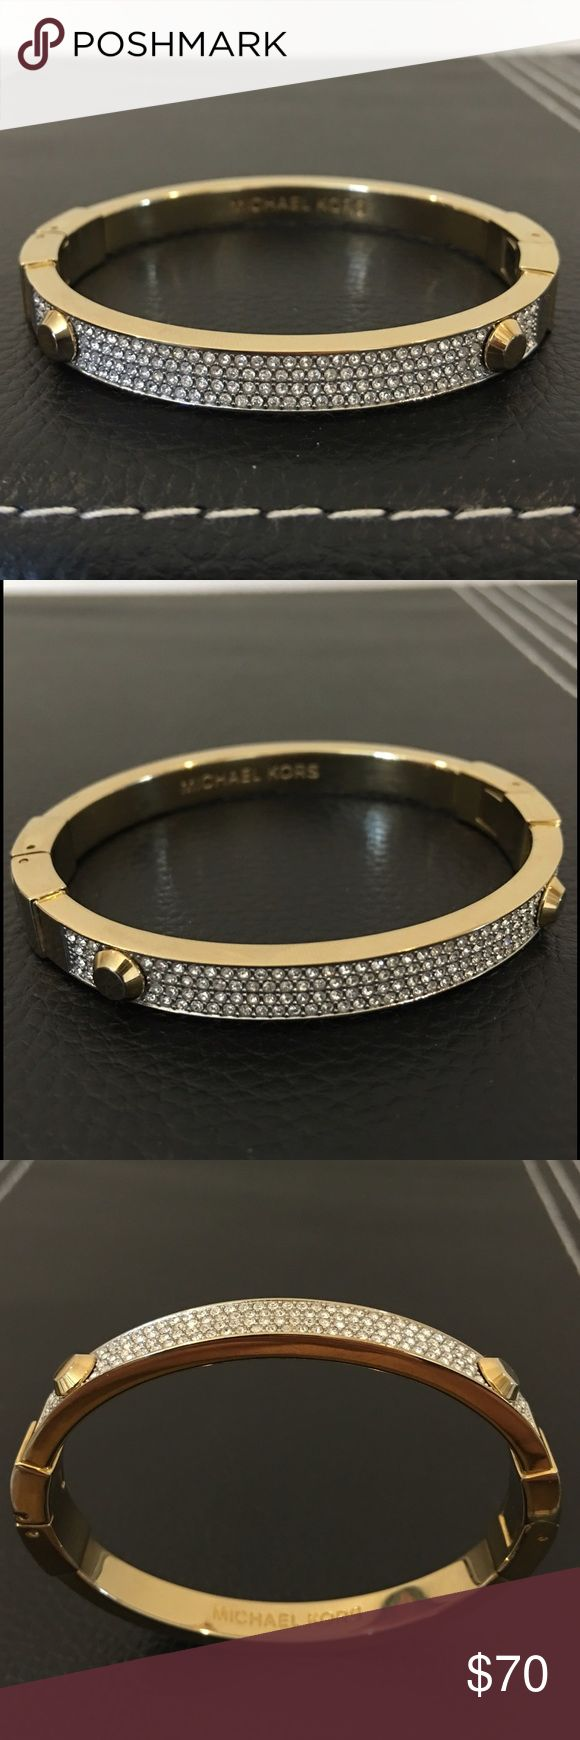 Authentic MICHAEL KORS bracelet Authentic MICHAEL KORS bracelet.  Pave crystals and studs embellish this sturdy gold tone bangle bracelet.  In excellent preowned condition.  Please ask any questions you may have before purchasing. 🚫Trades, 🚫Low ball offers please. Michael Kors Jewelry Bracelets